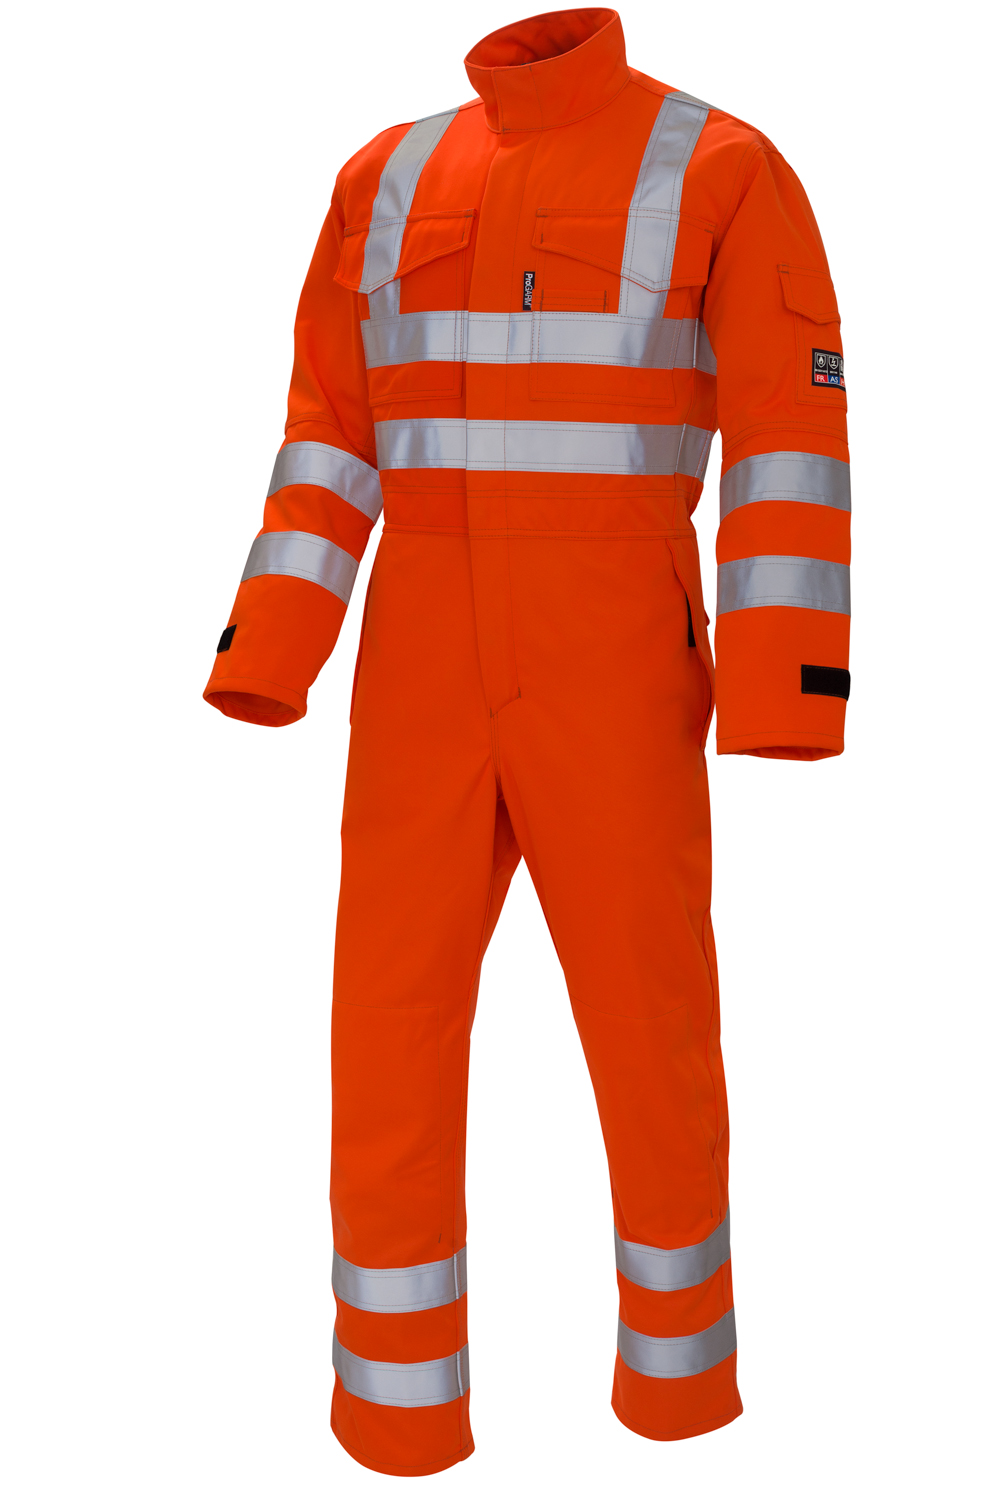 Rail Industry | ProGARM 4690 is premium quality Hi-Viz Orange Arc Flash Coverall. Designed for the protection of workers on or near the rail trackside requiring garments certified to RIS-3279-TOM.